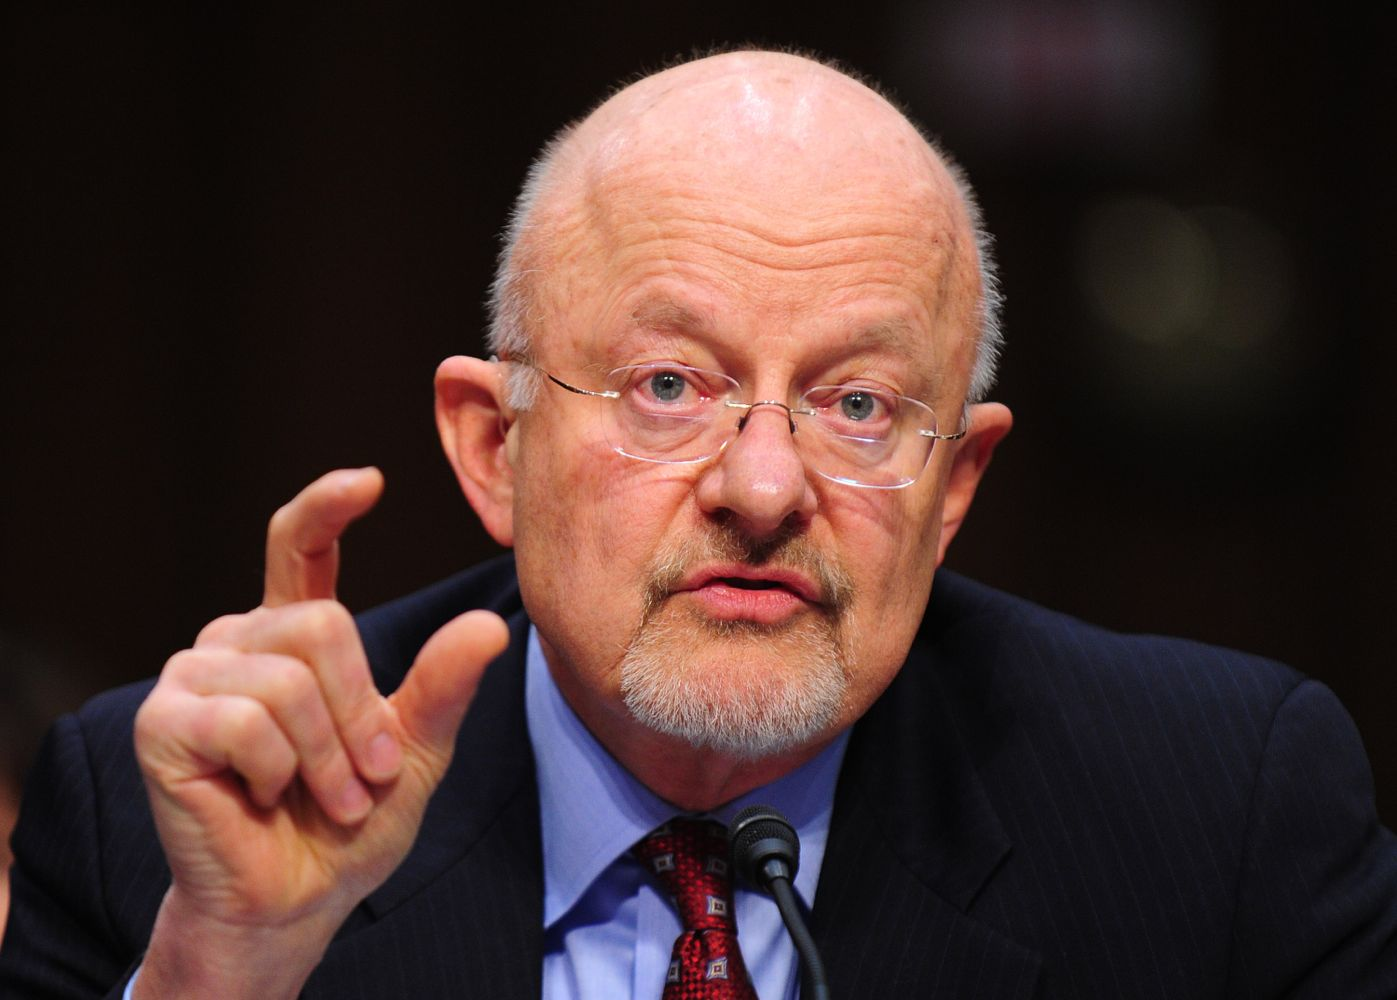 Director of National Intelligence James Clapper testifies in Washington